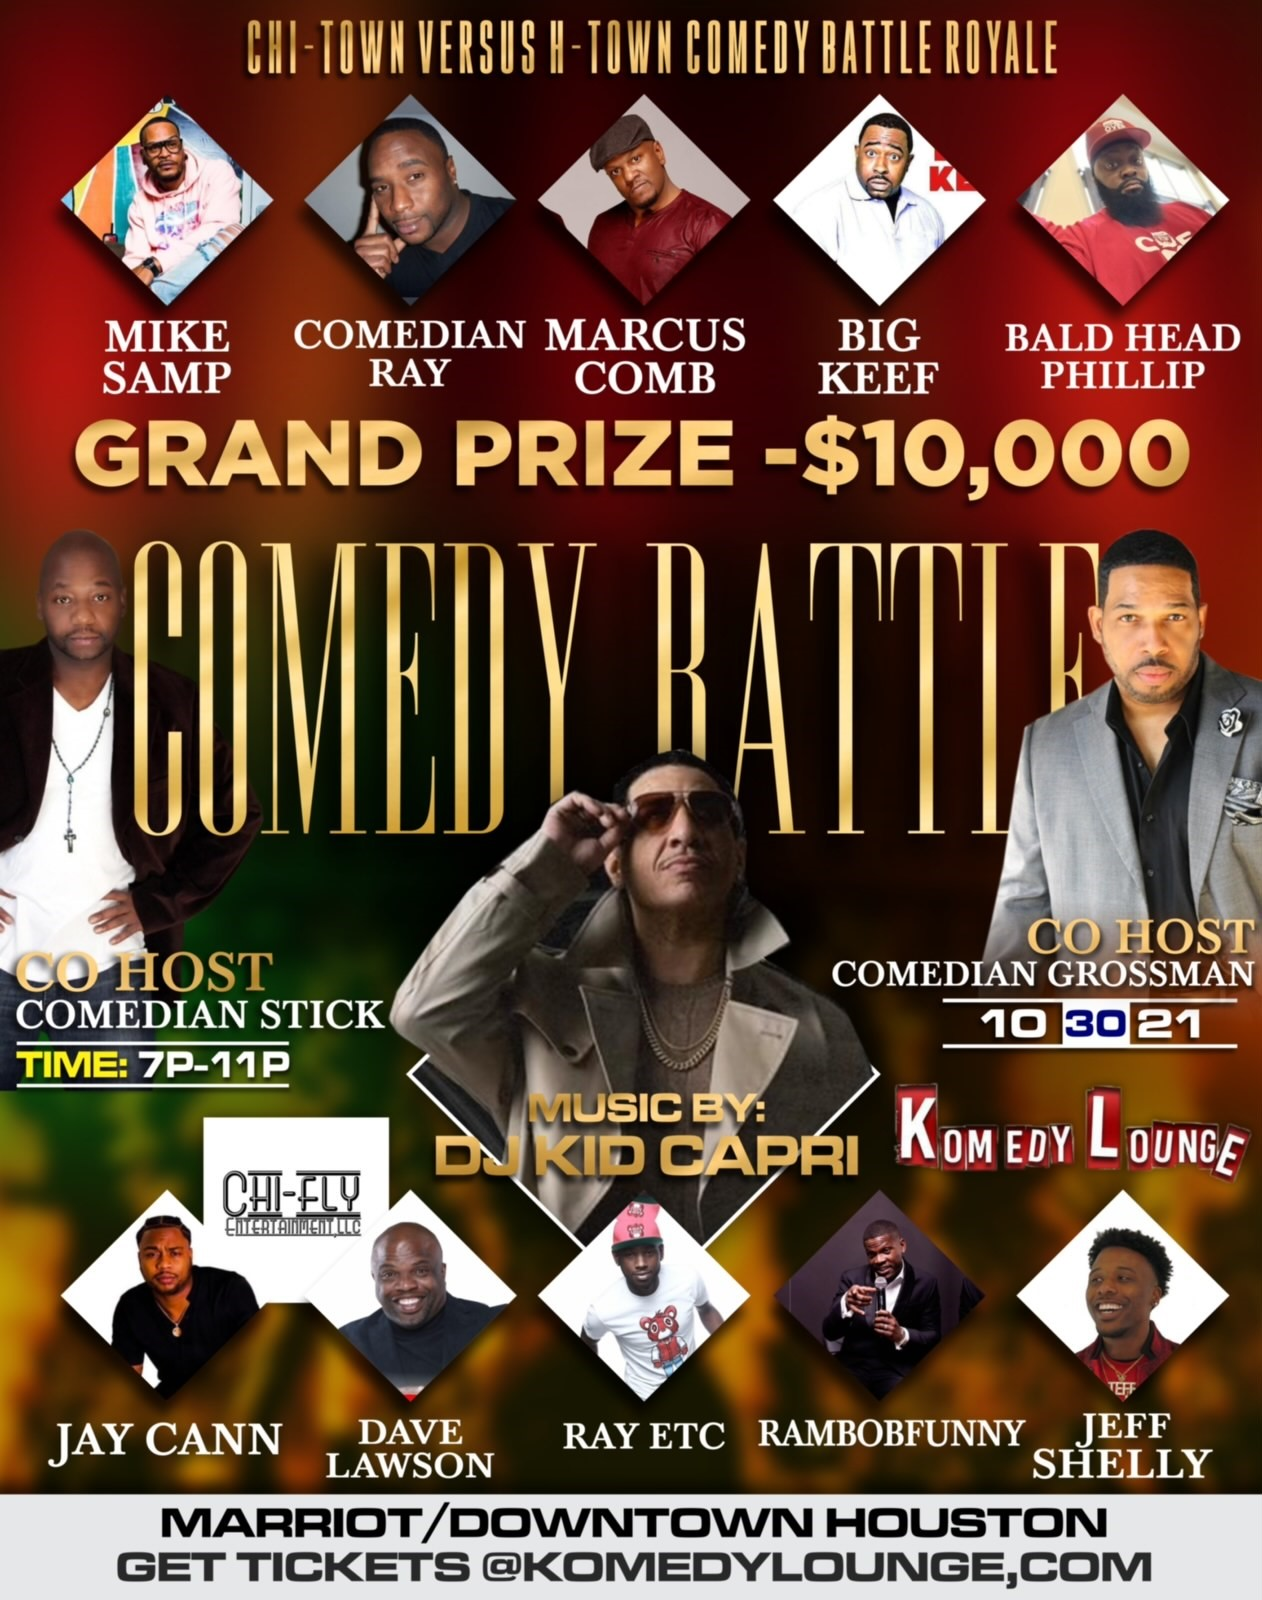 Comedy Battle Royale Chi-Town vs. H-Town on Oct 30, 19:00@Komedy Lounge - Buy tickets and Get information on komedylounge.com